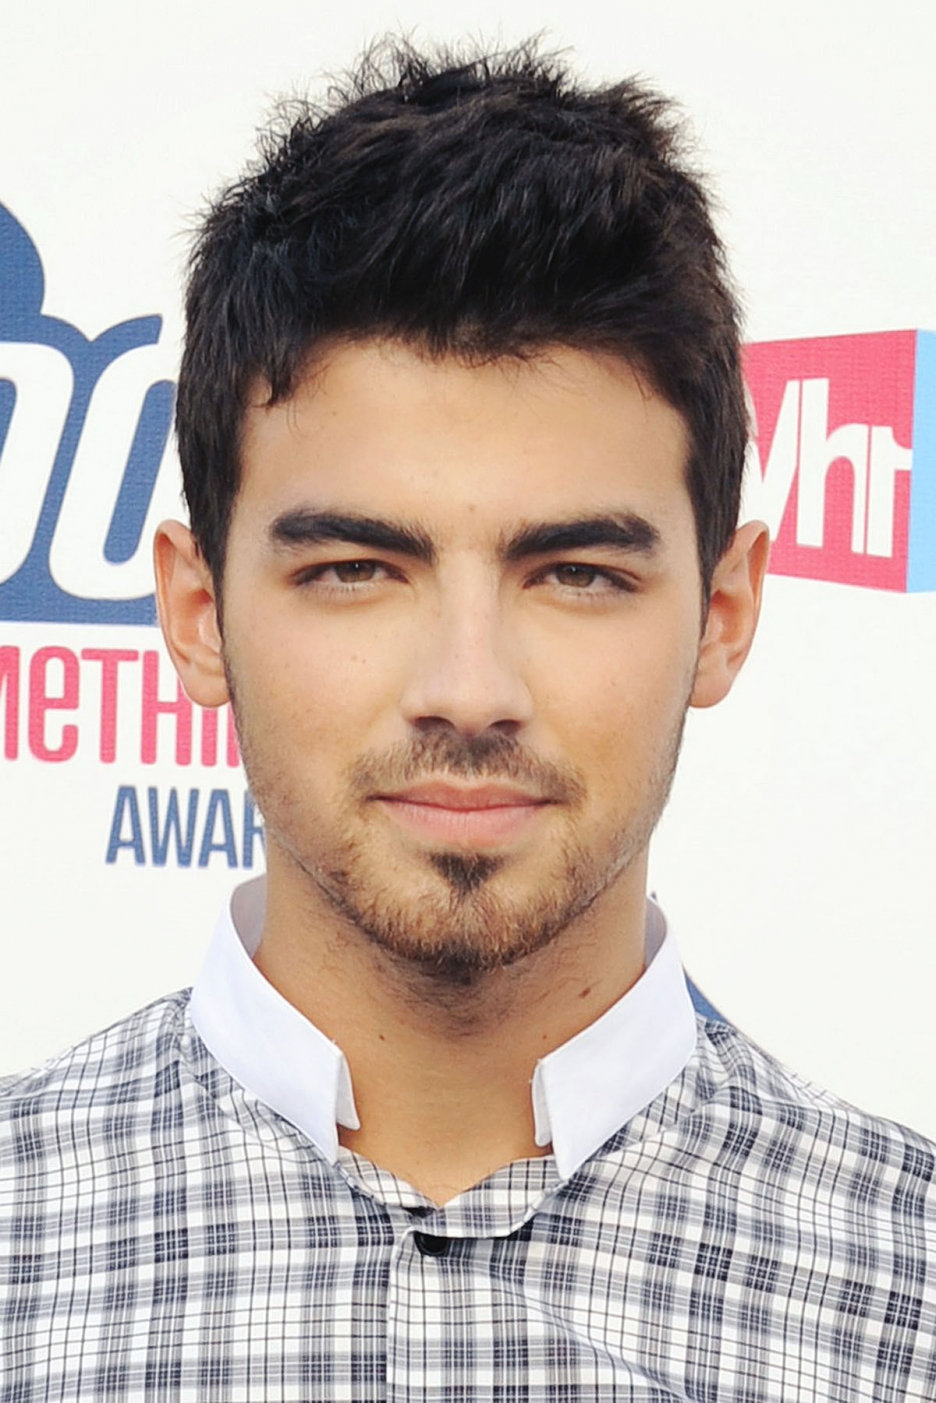 Joe Jonas photo #347542